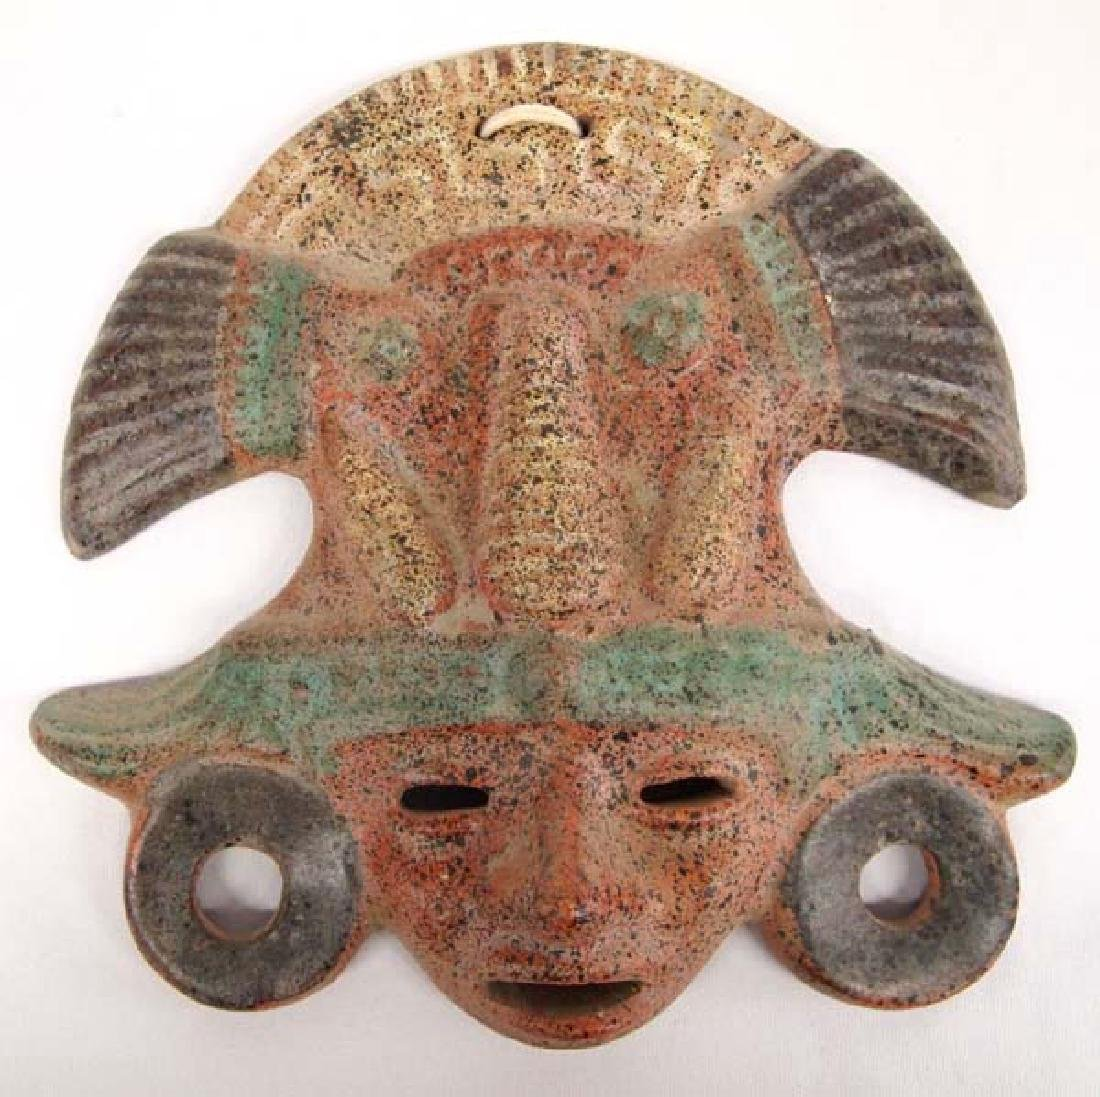 Mexican Pottery Mask, 10'', $12.50 S&H